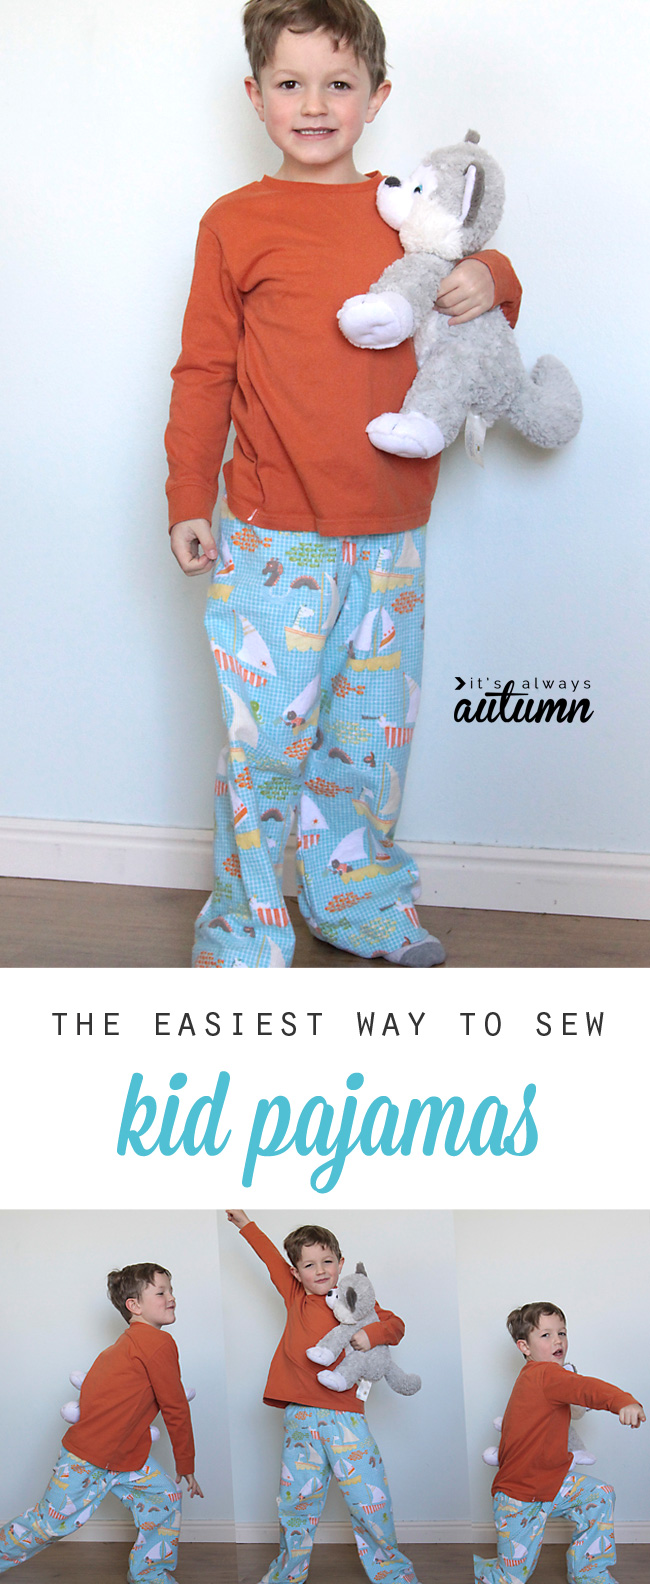 This tutorial explains the easiest way to sew kid pajamas - no pattern needed! Great Christmas gift idea. How to make easy pj's.